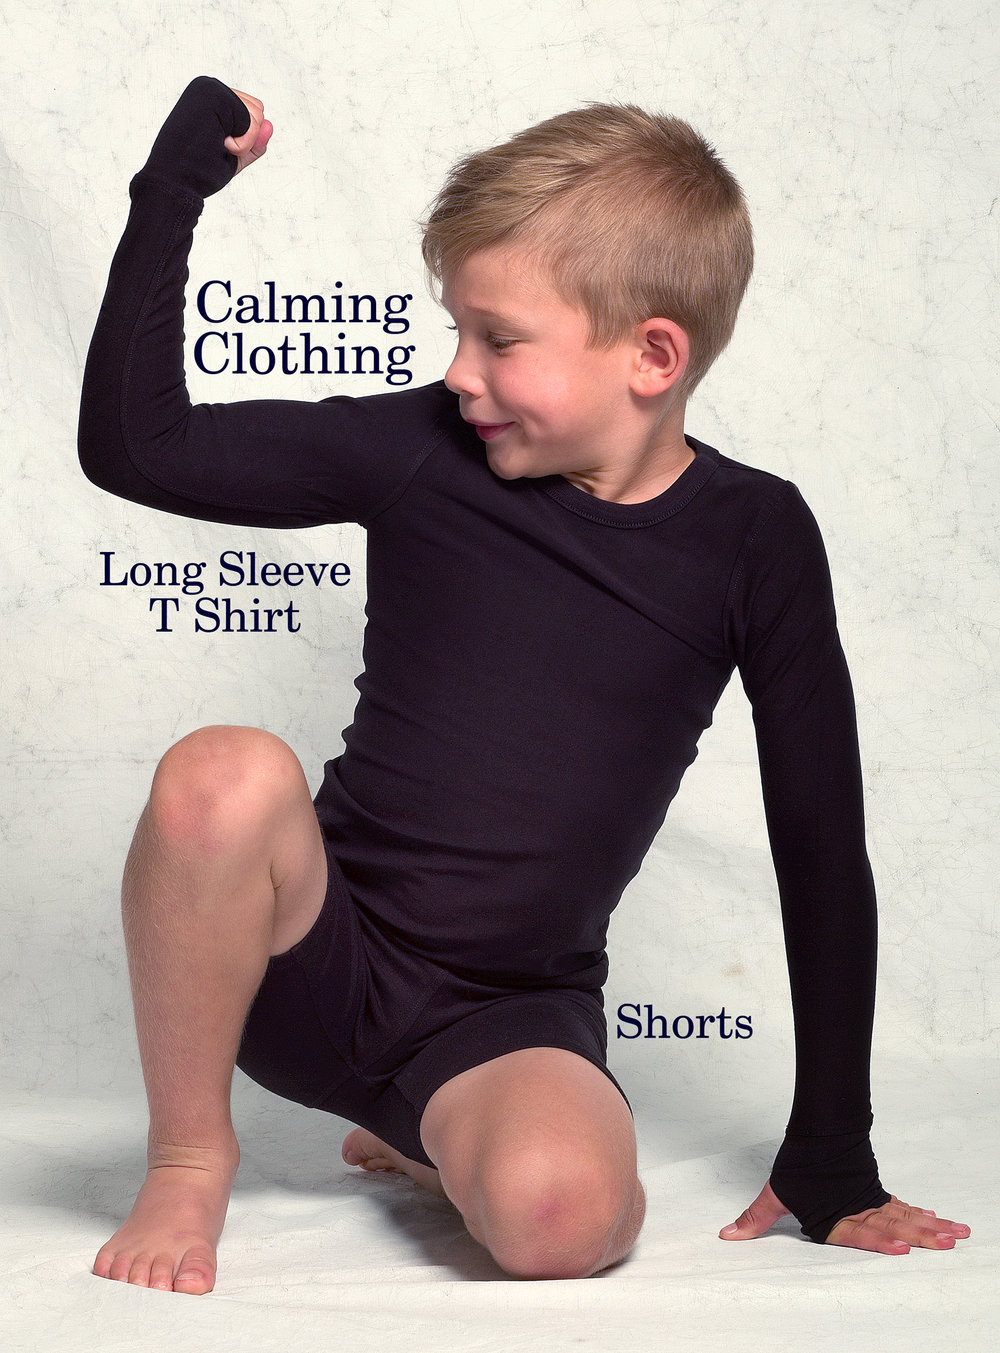 calming_clothing_long_sleeve_tshirt_black_shorts.jpg